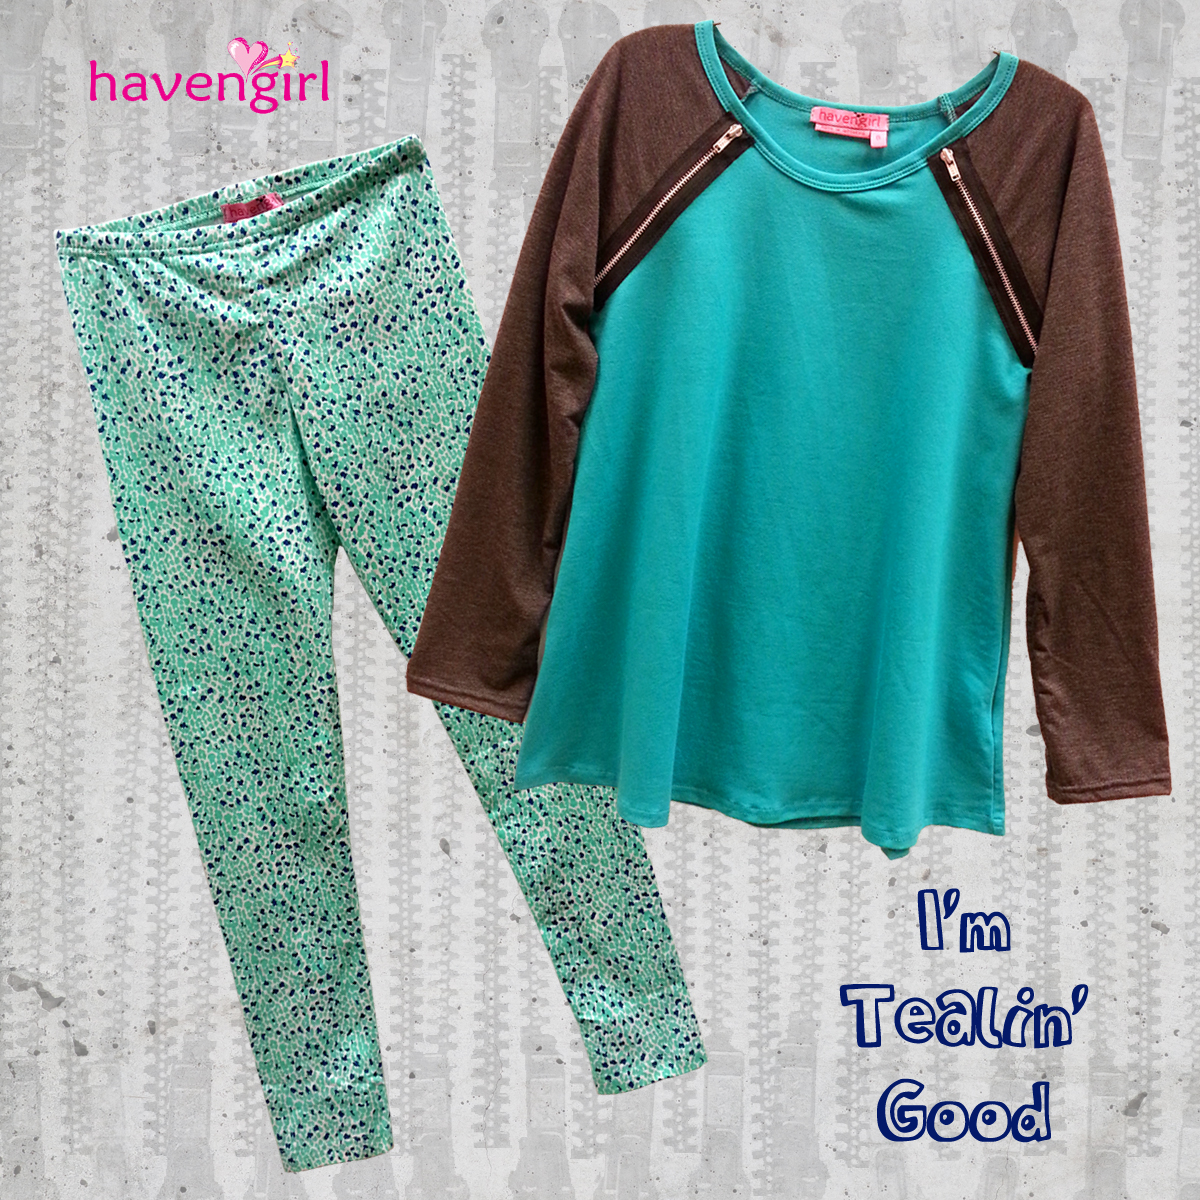 Cute top with zipper features and cheetah leggings in teal from Haven Girl